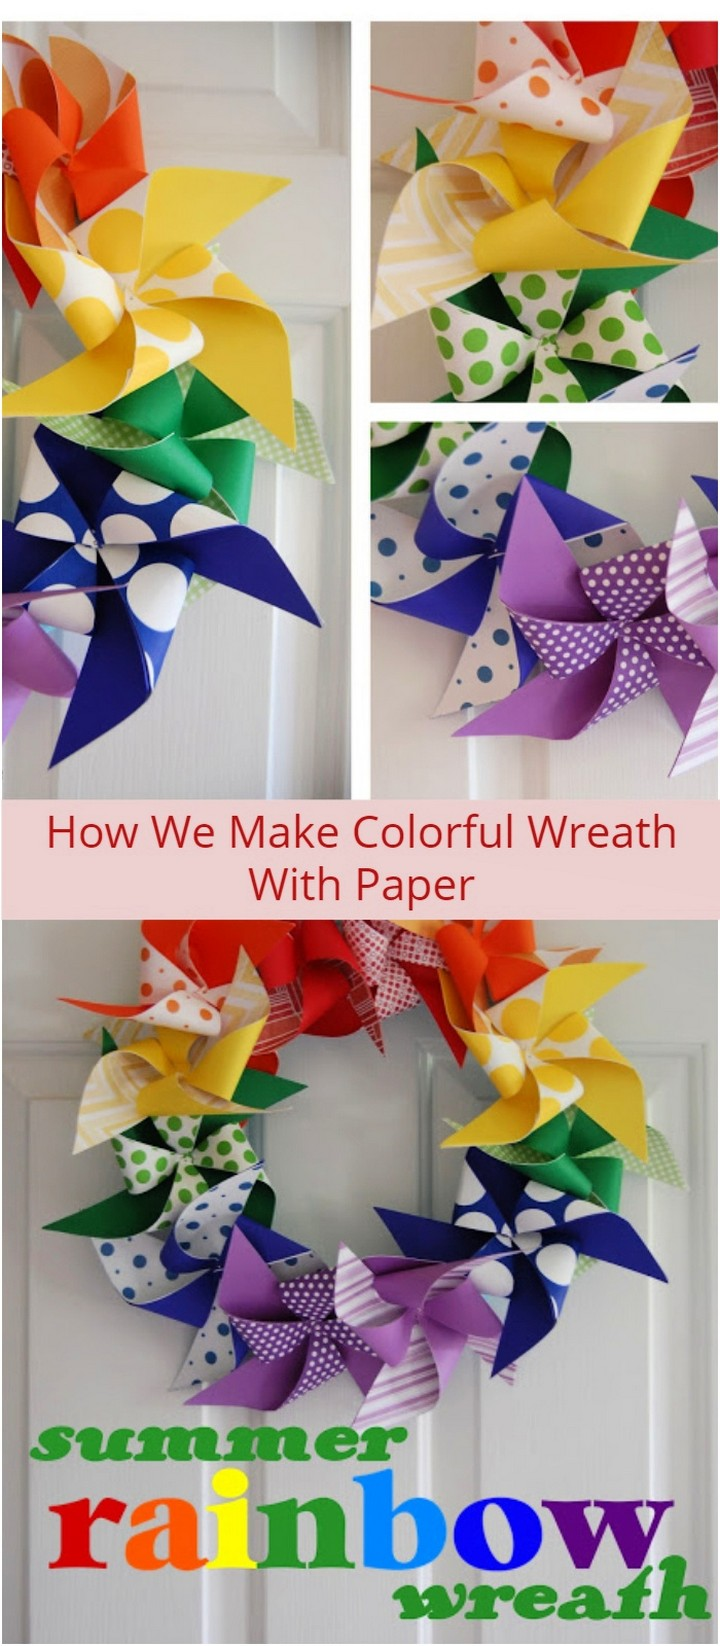 How We Make Colorful Wreath With Paper